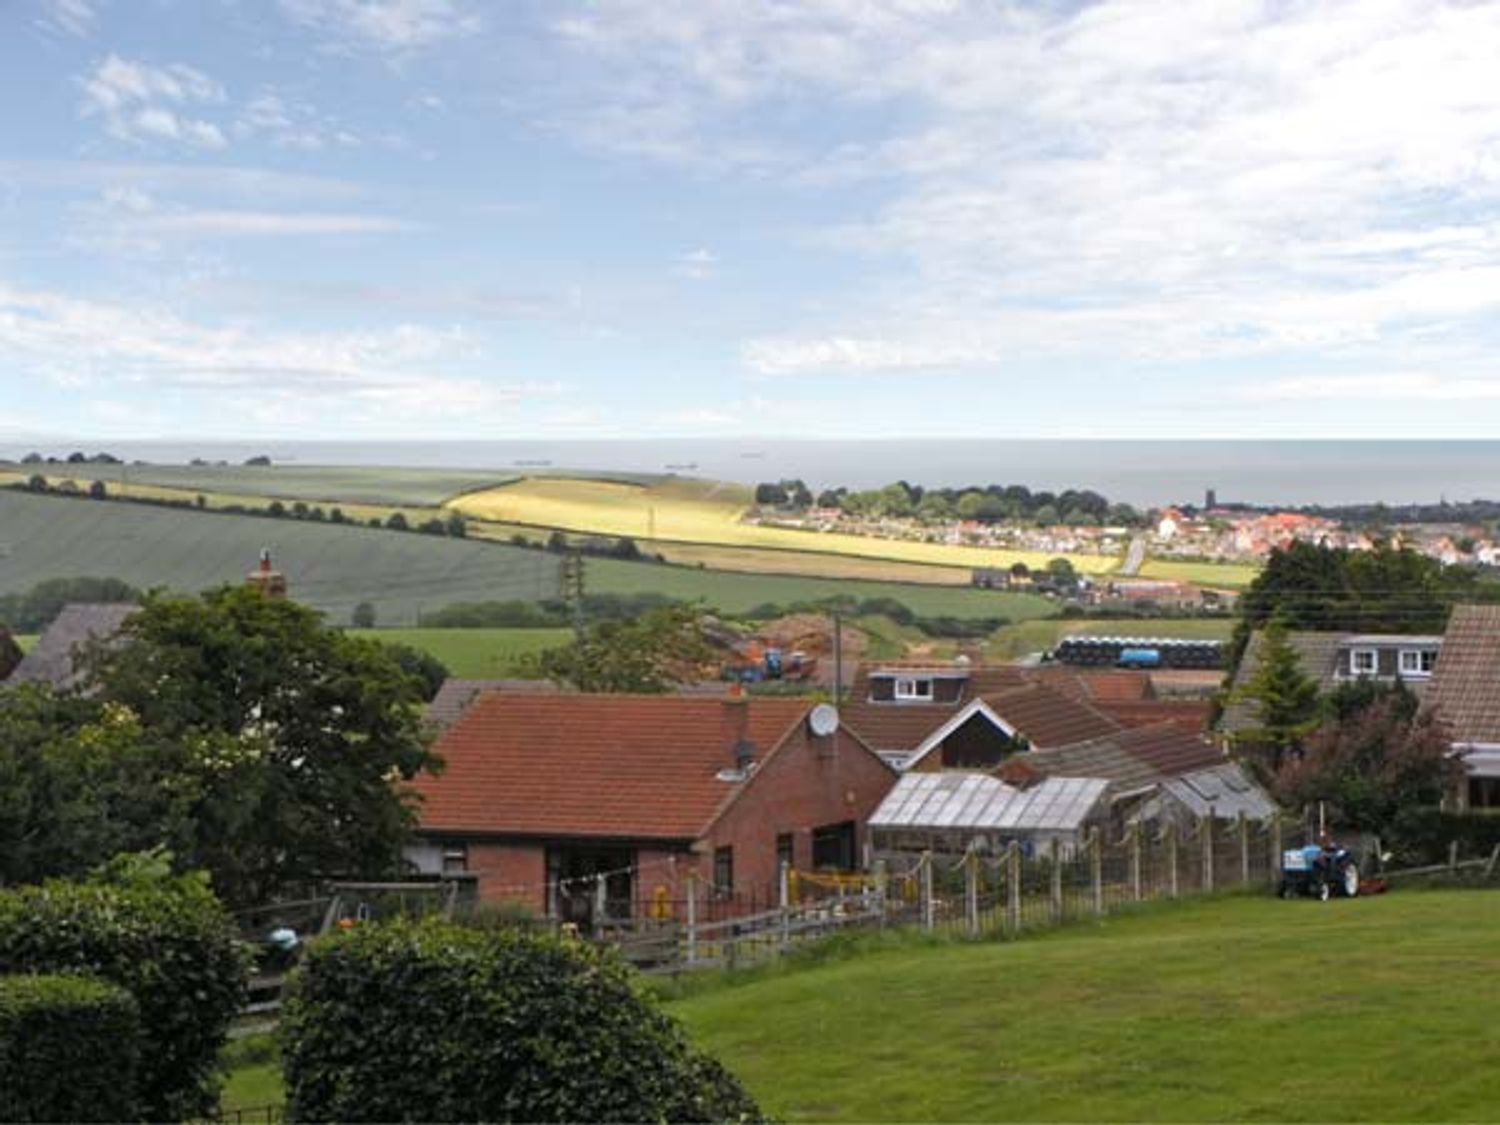 Cow Byre, North York Moors and Coast